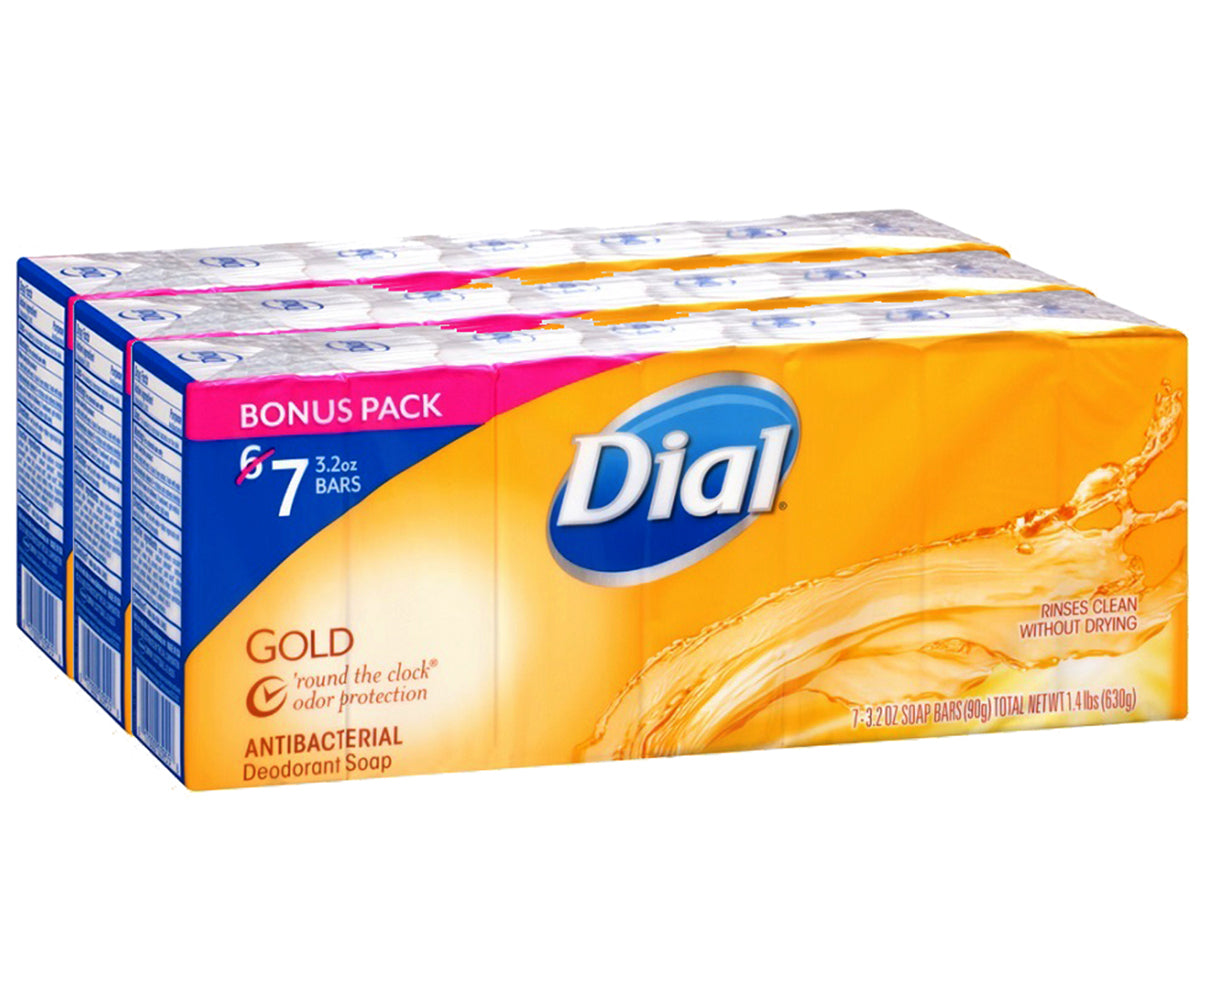 Dial Antibacterial Deodorant Soap, Gold, 3.2 Ounce, 21 Count